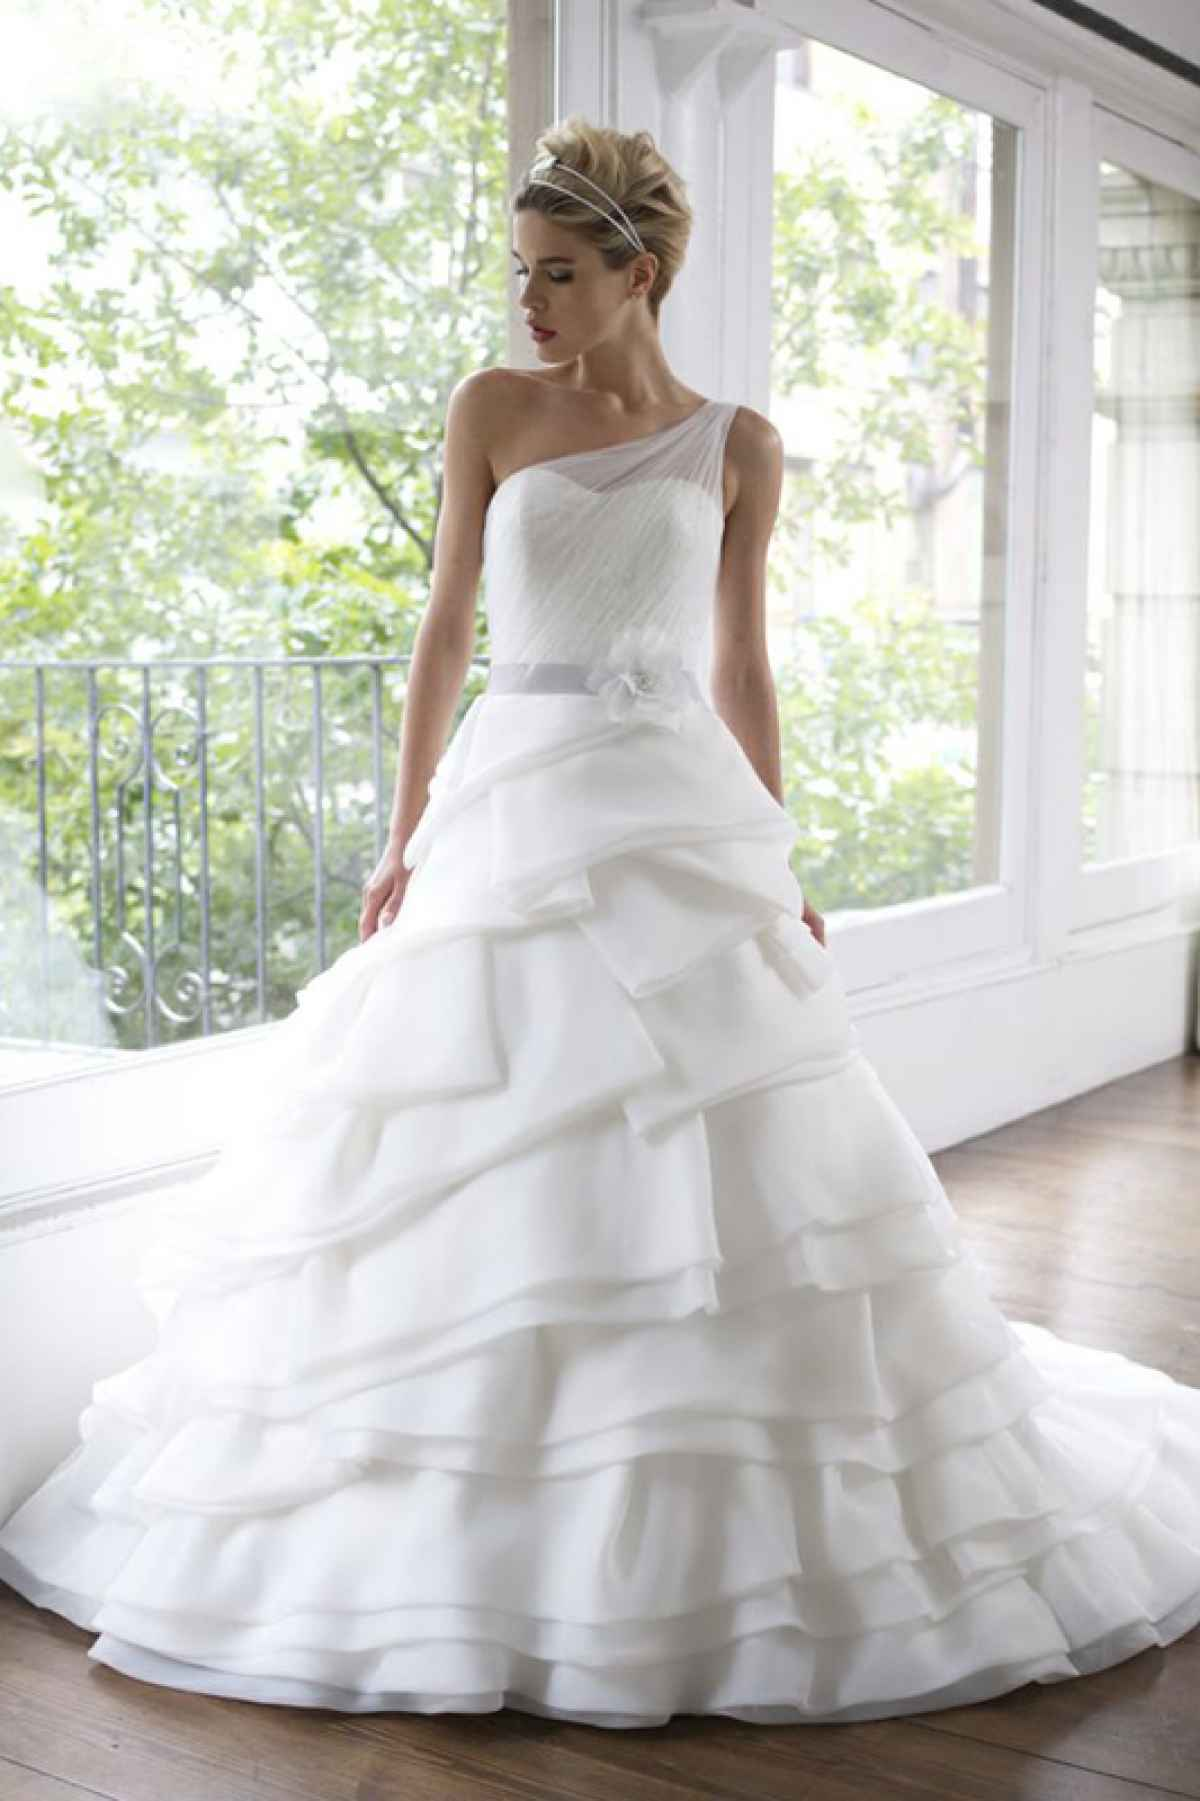 Feel Classy In Cheap Wedding Dresses  Ohh My My. Wedding Guest Dresses Uk Plus Size. Off The Shoulder Mexican Wedding Dress. Vintage Style Beaded Wedding Dresses. Satin Beaded Wedding Dresses. Wedding Dress Vintage Cheap. Wedding Dresses Plus Size Sydney. Worst Celebrity Wedding Dresses Ever. Mint Colored Wedding Dresses